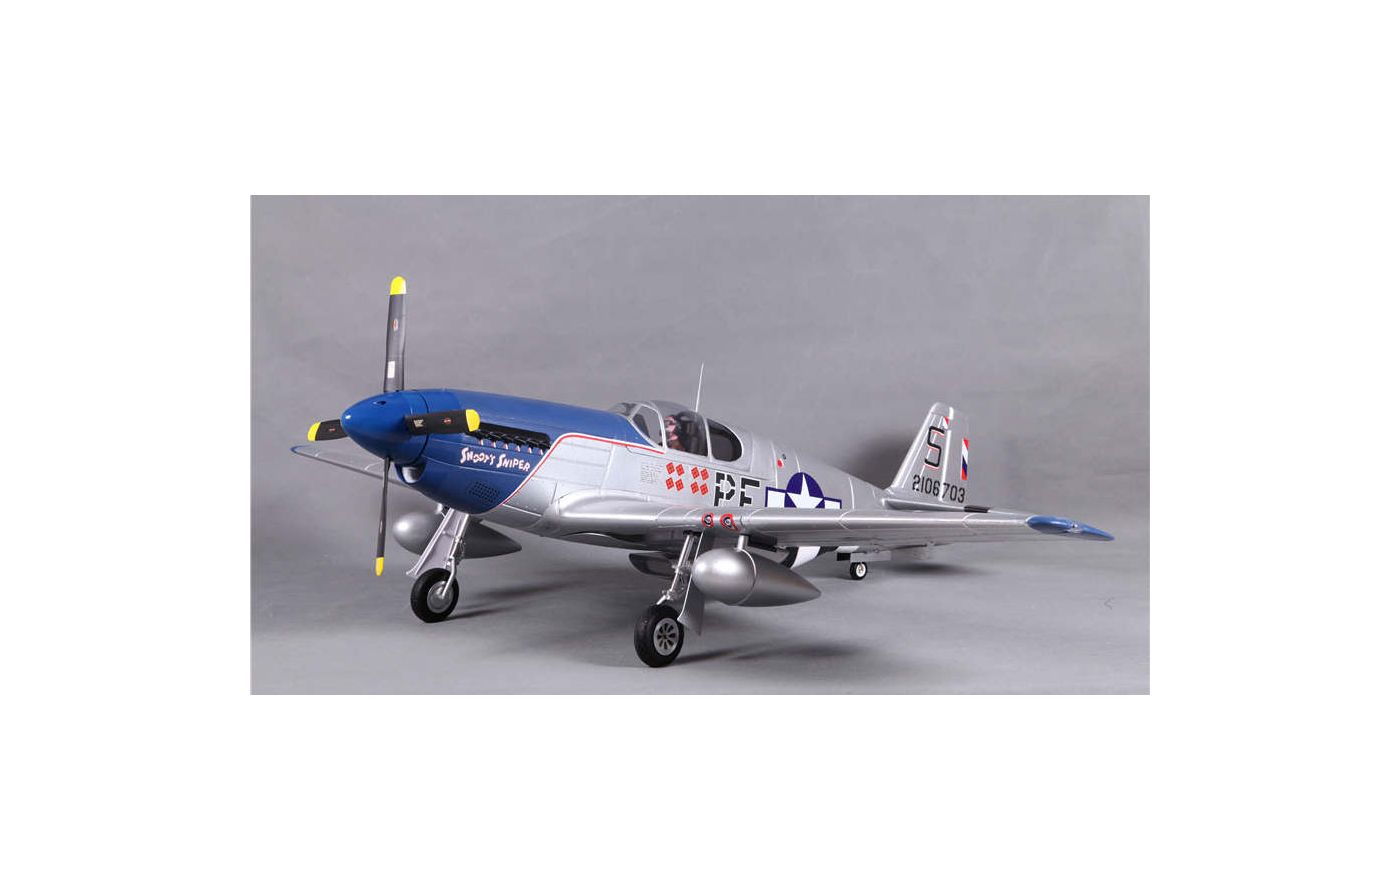 Image for P-51B Snoot's Sniper PNP, 1450mm from Force RC